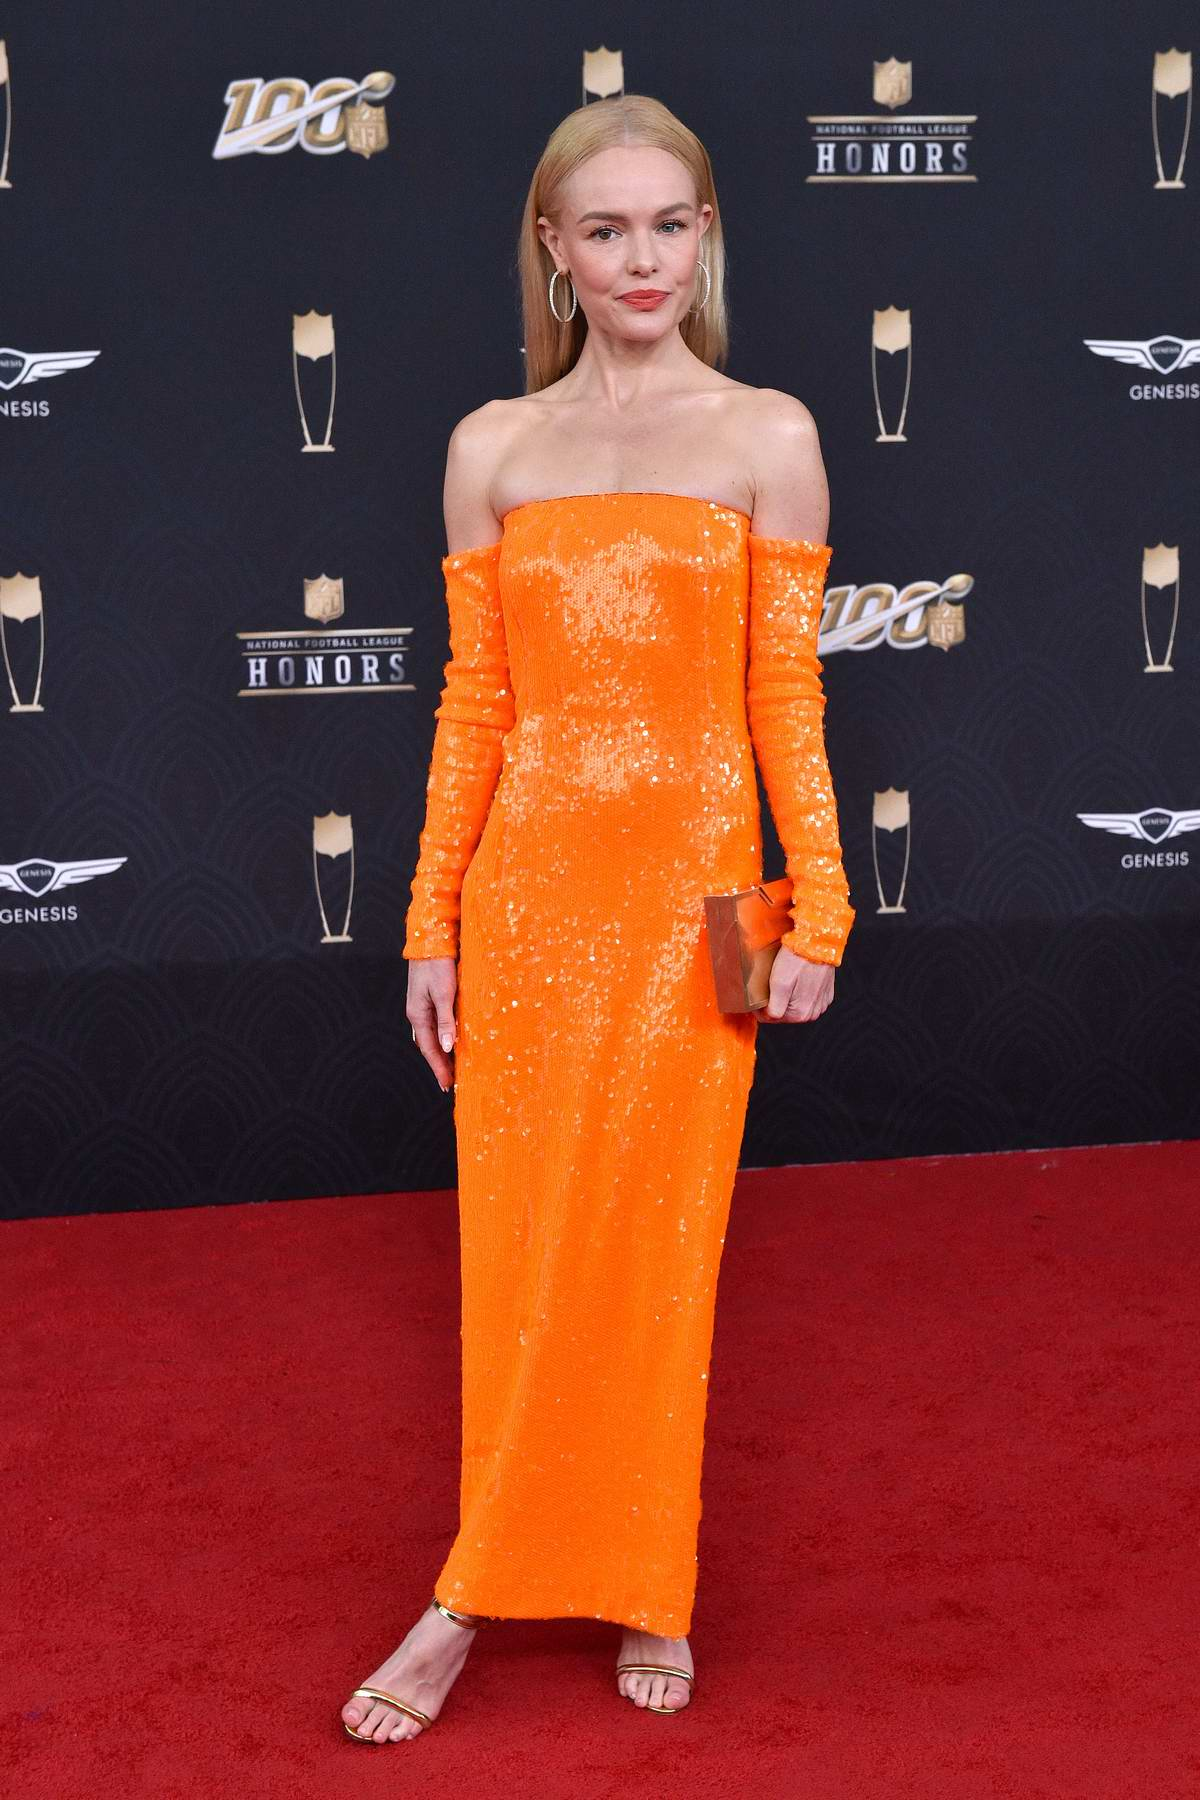 Kate Bosworth attends the 9th Annual NFL Honors at Adrienne Arsht Center in Miami, Florida